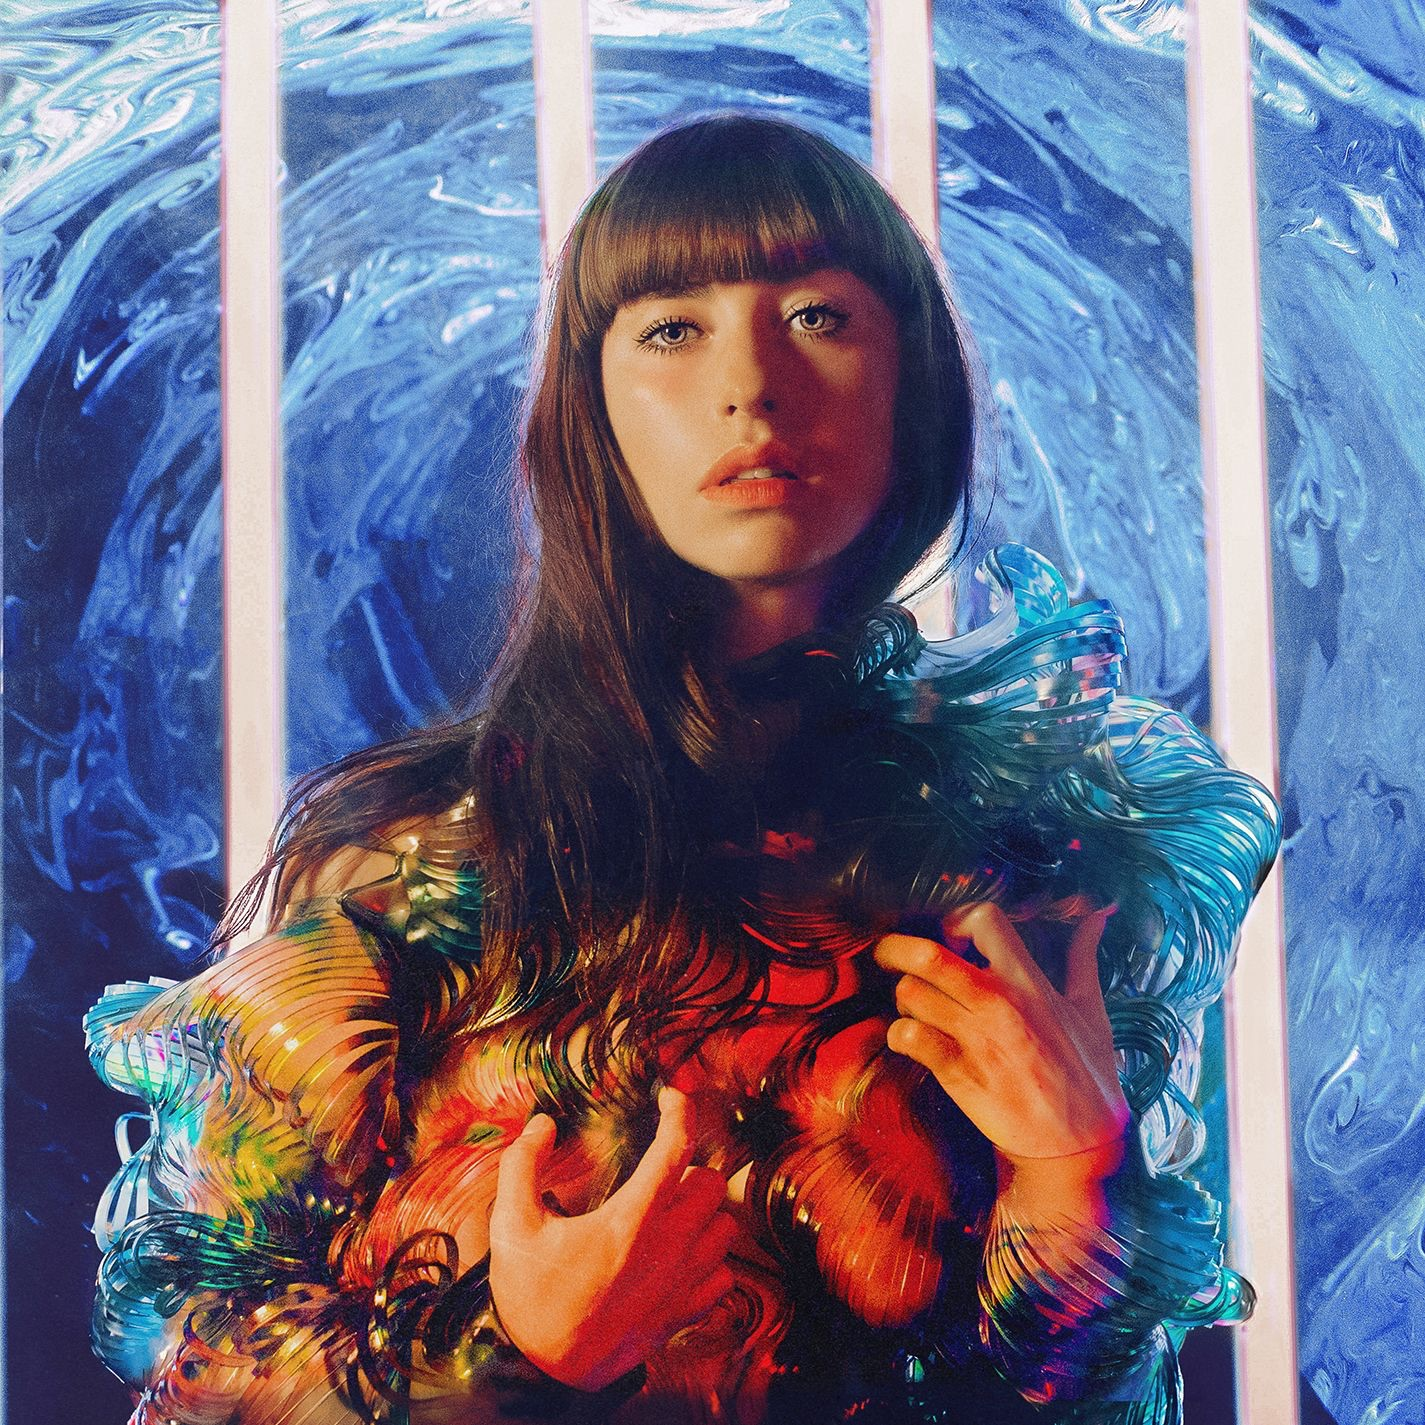 Top of the World by Kimbra